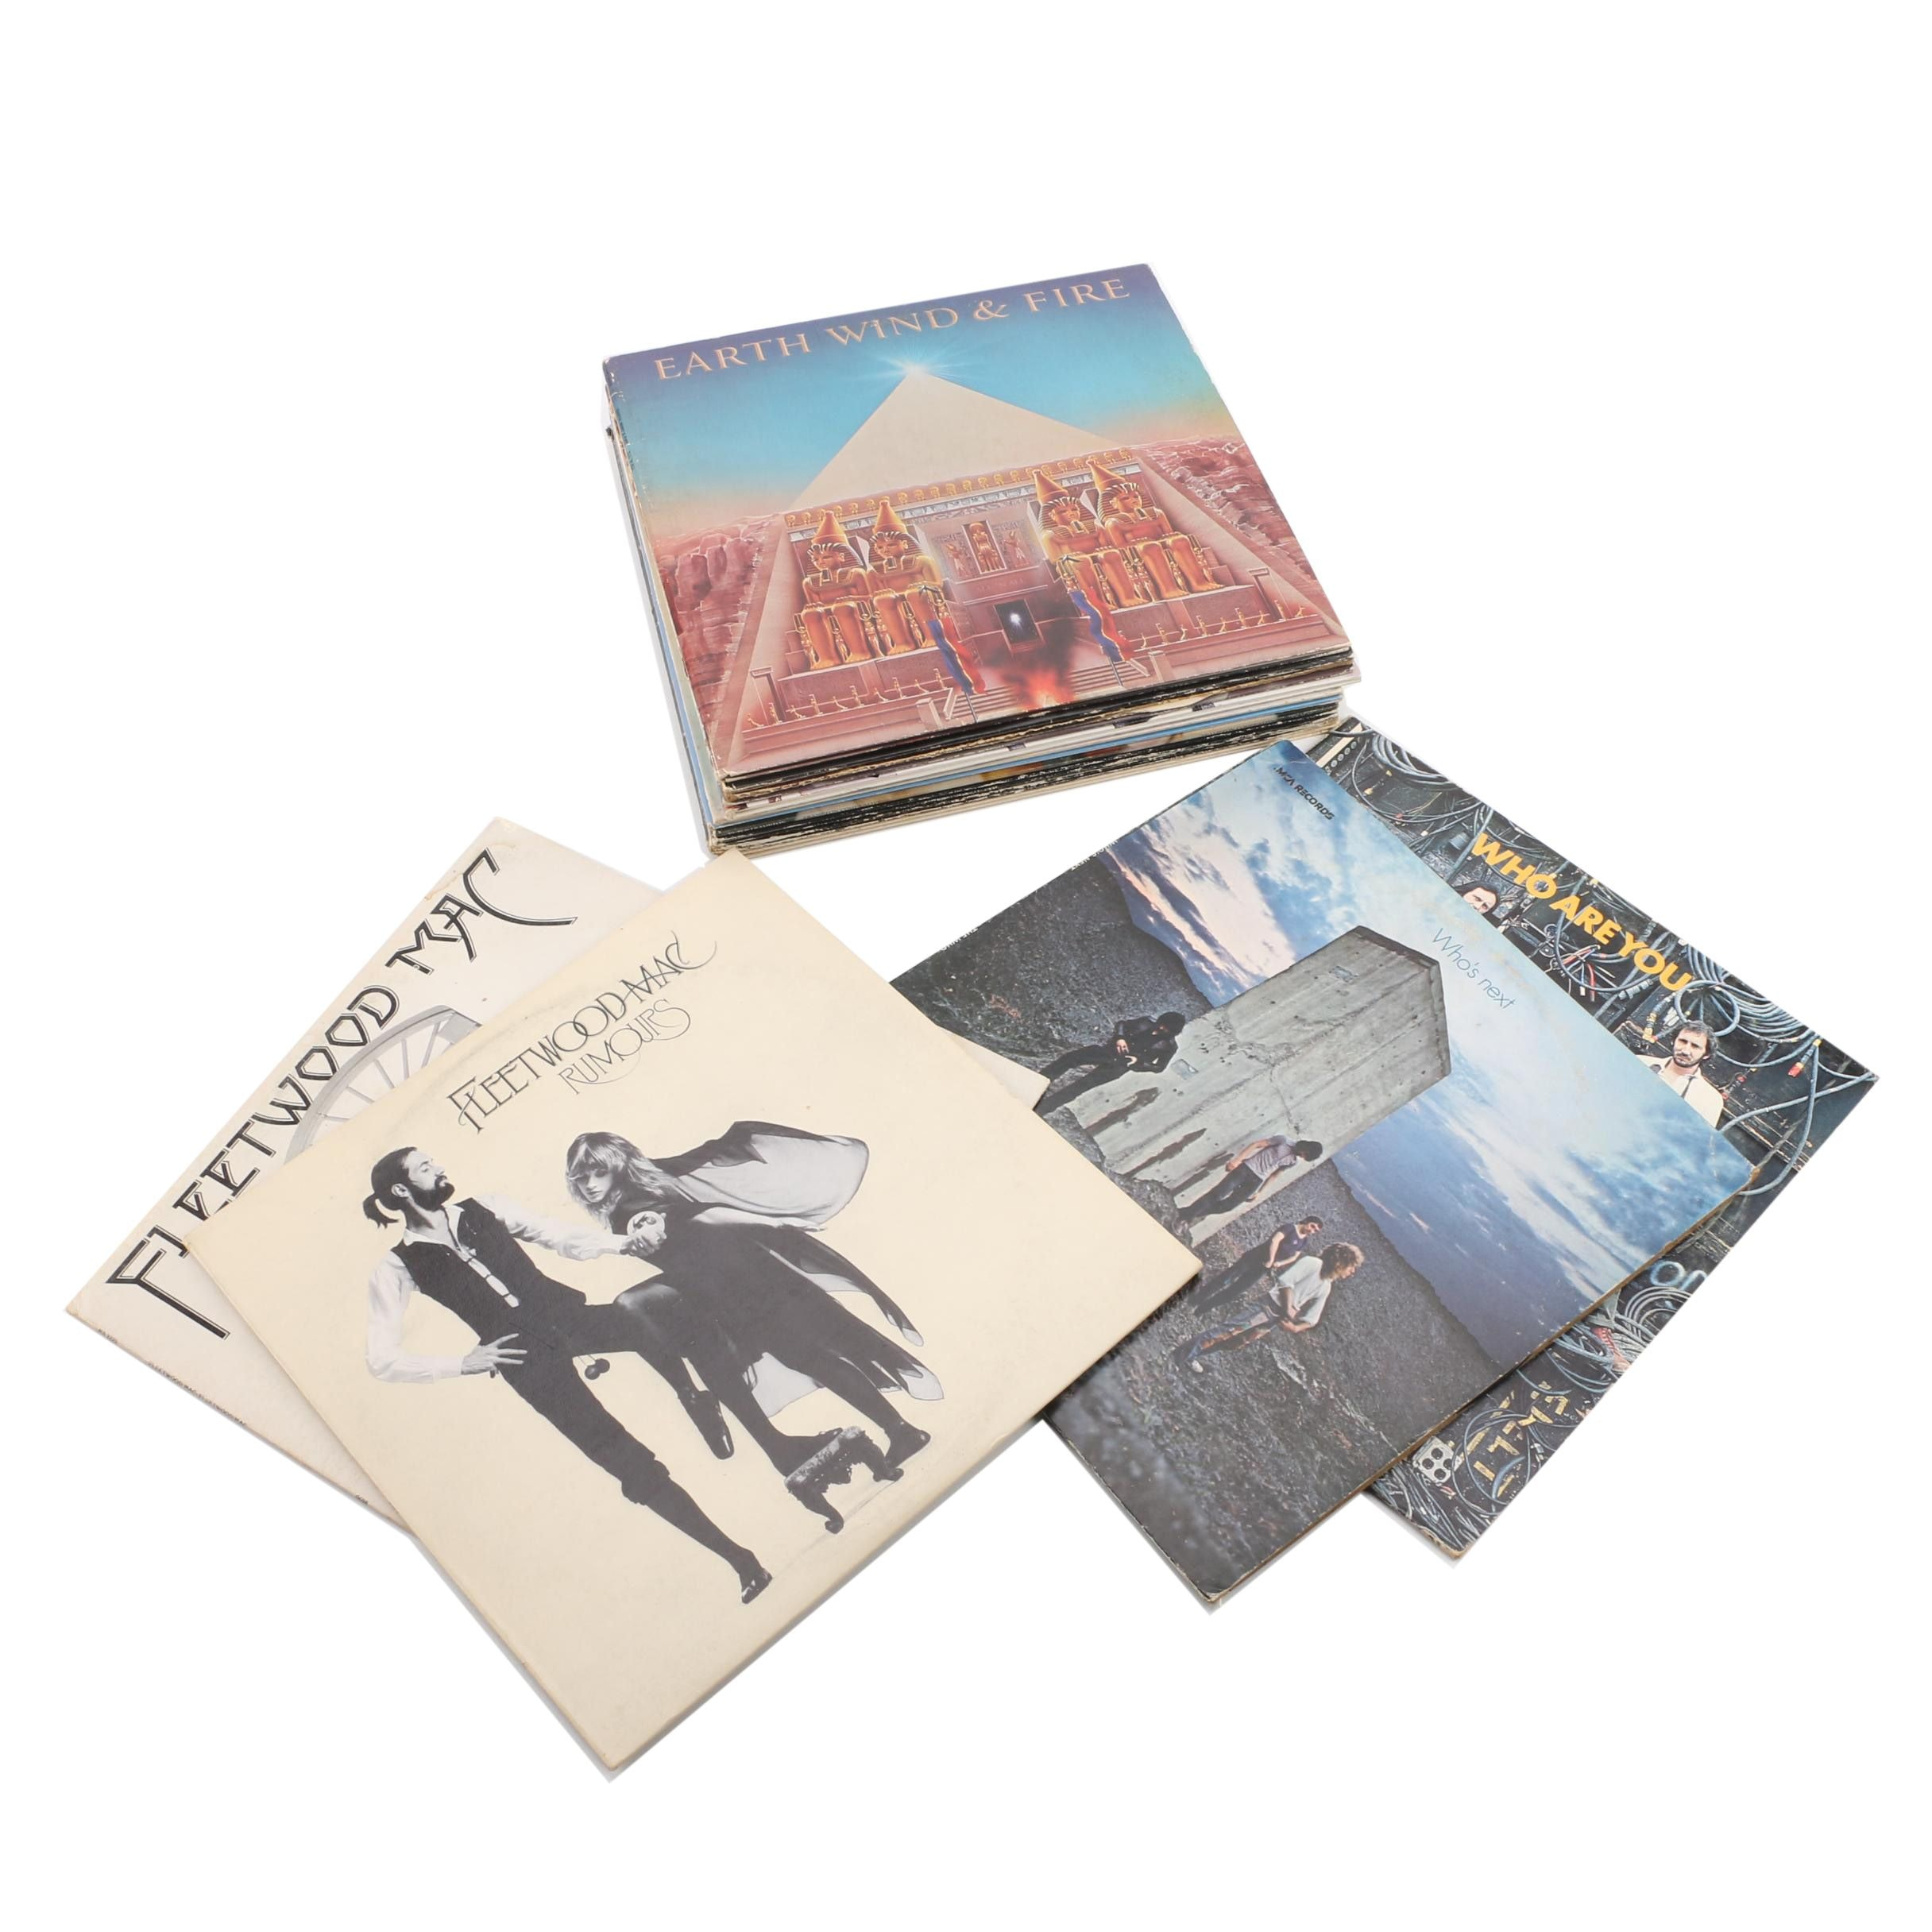 Vintage Rock Records Featuring Fleetwood Mac and the Who